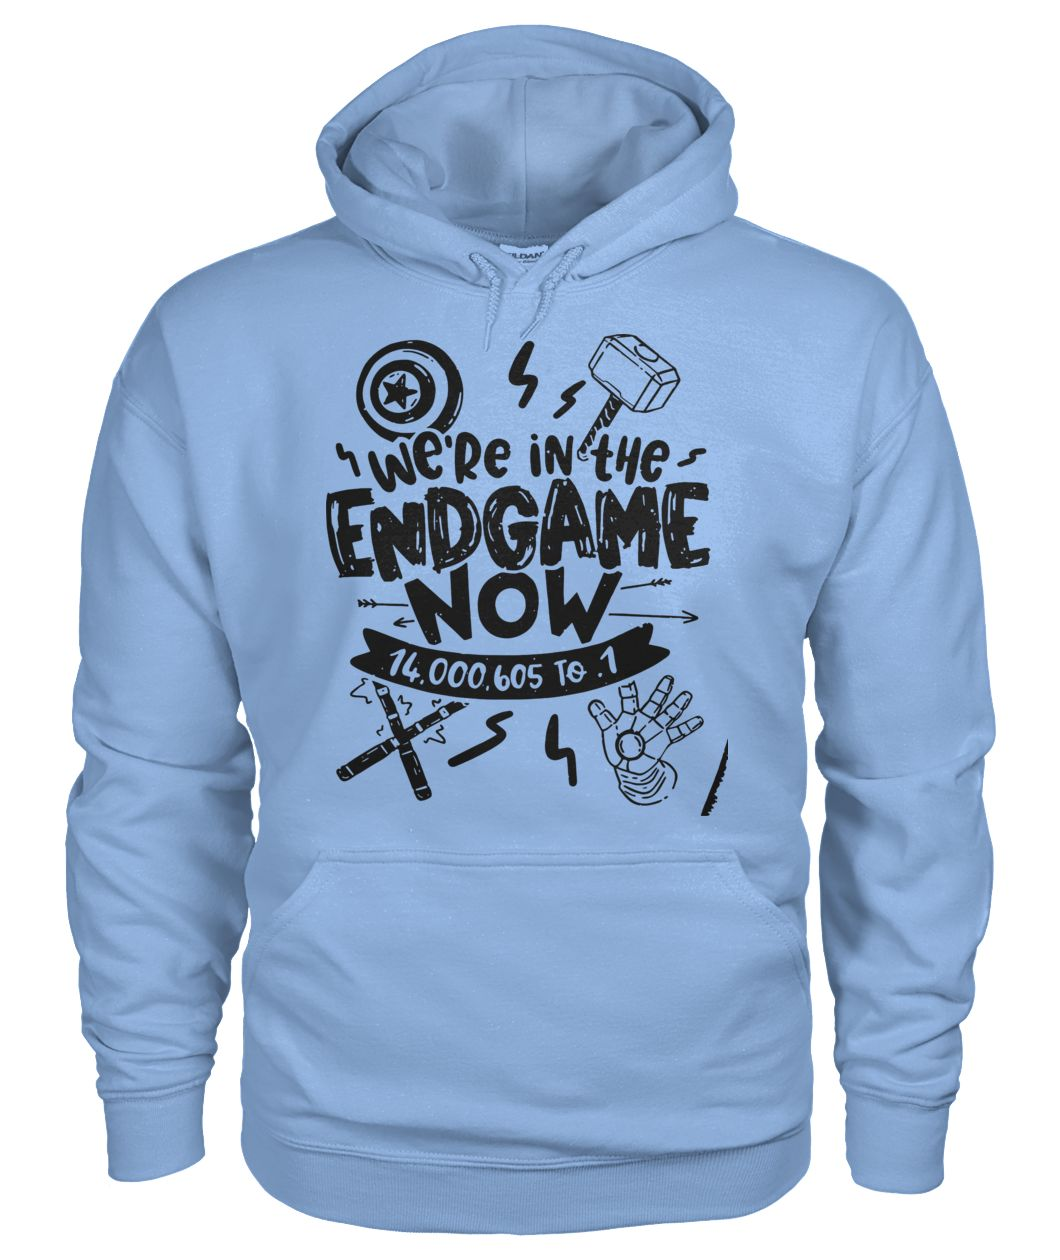 Avengers end game we're in the endgame now gildan hoodie